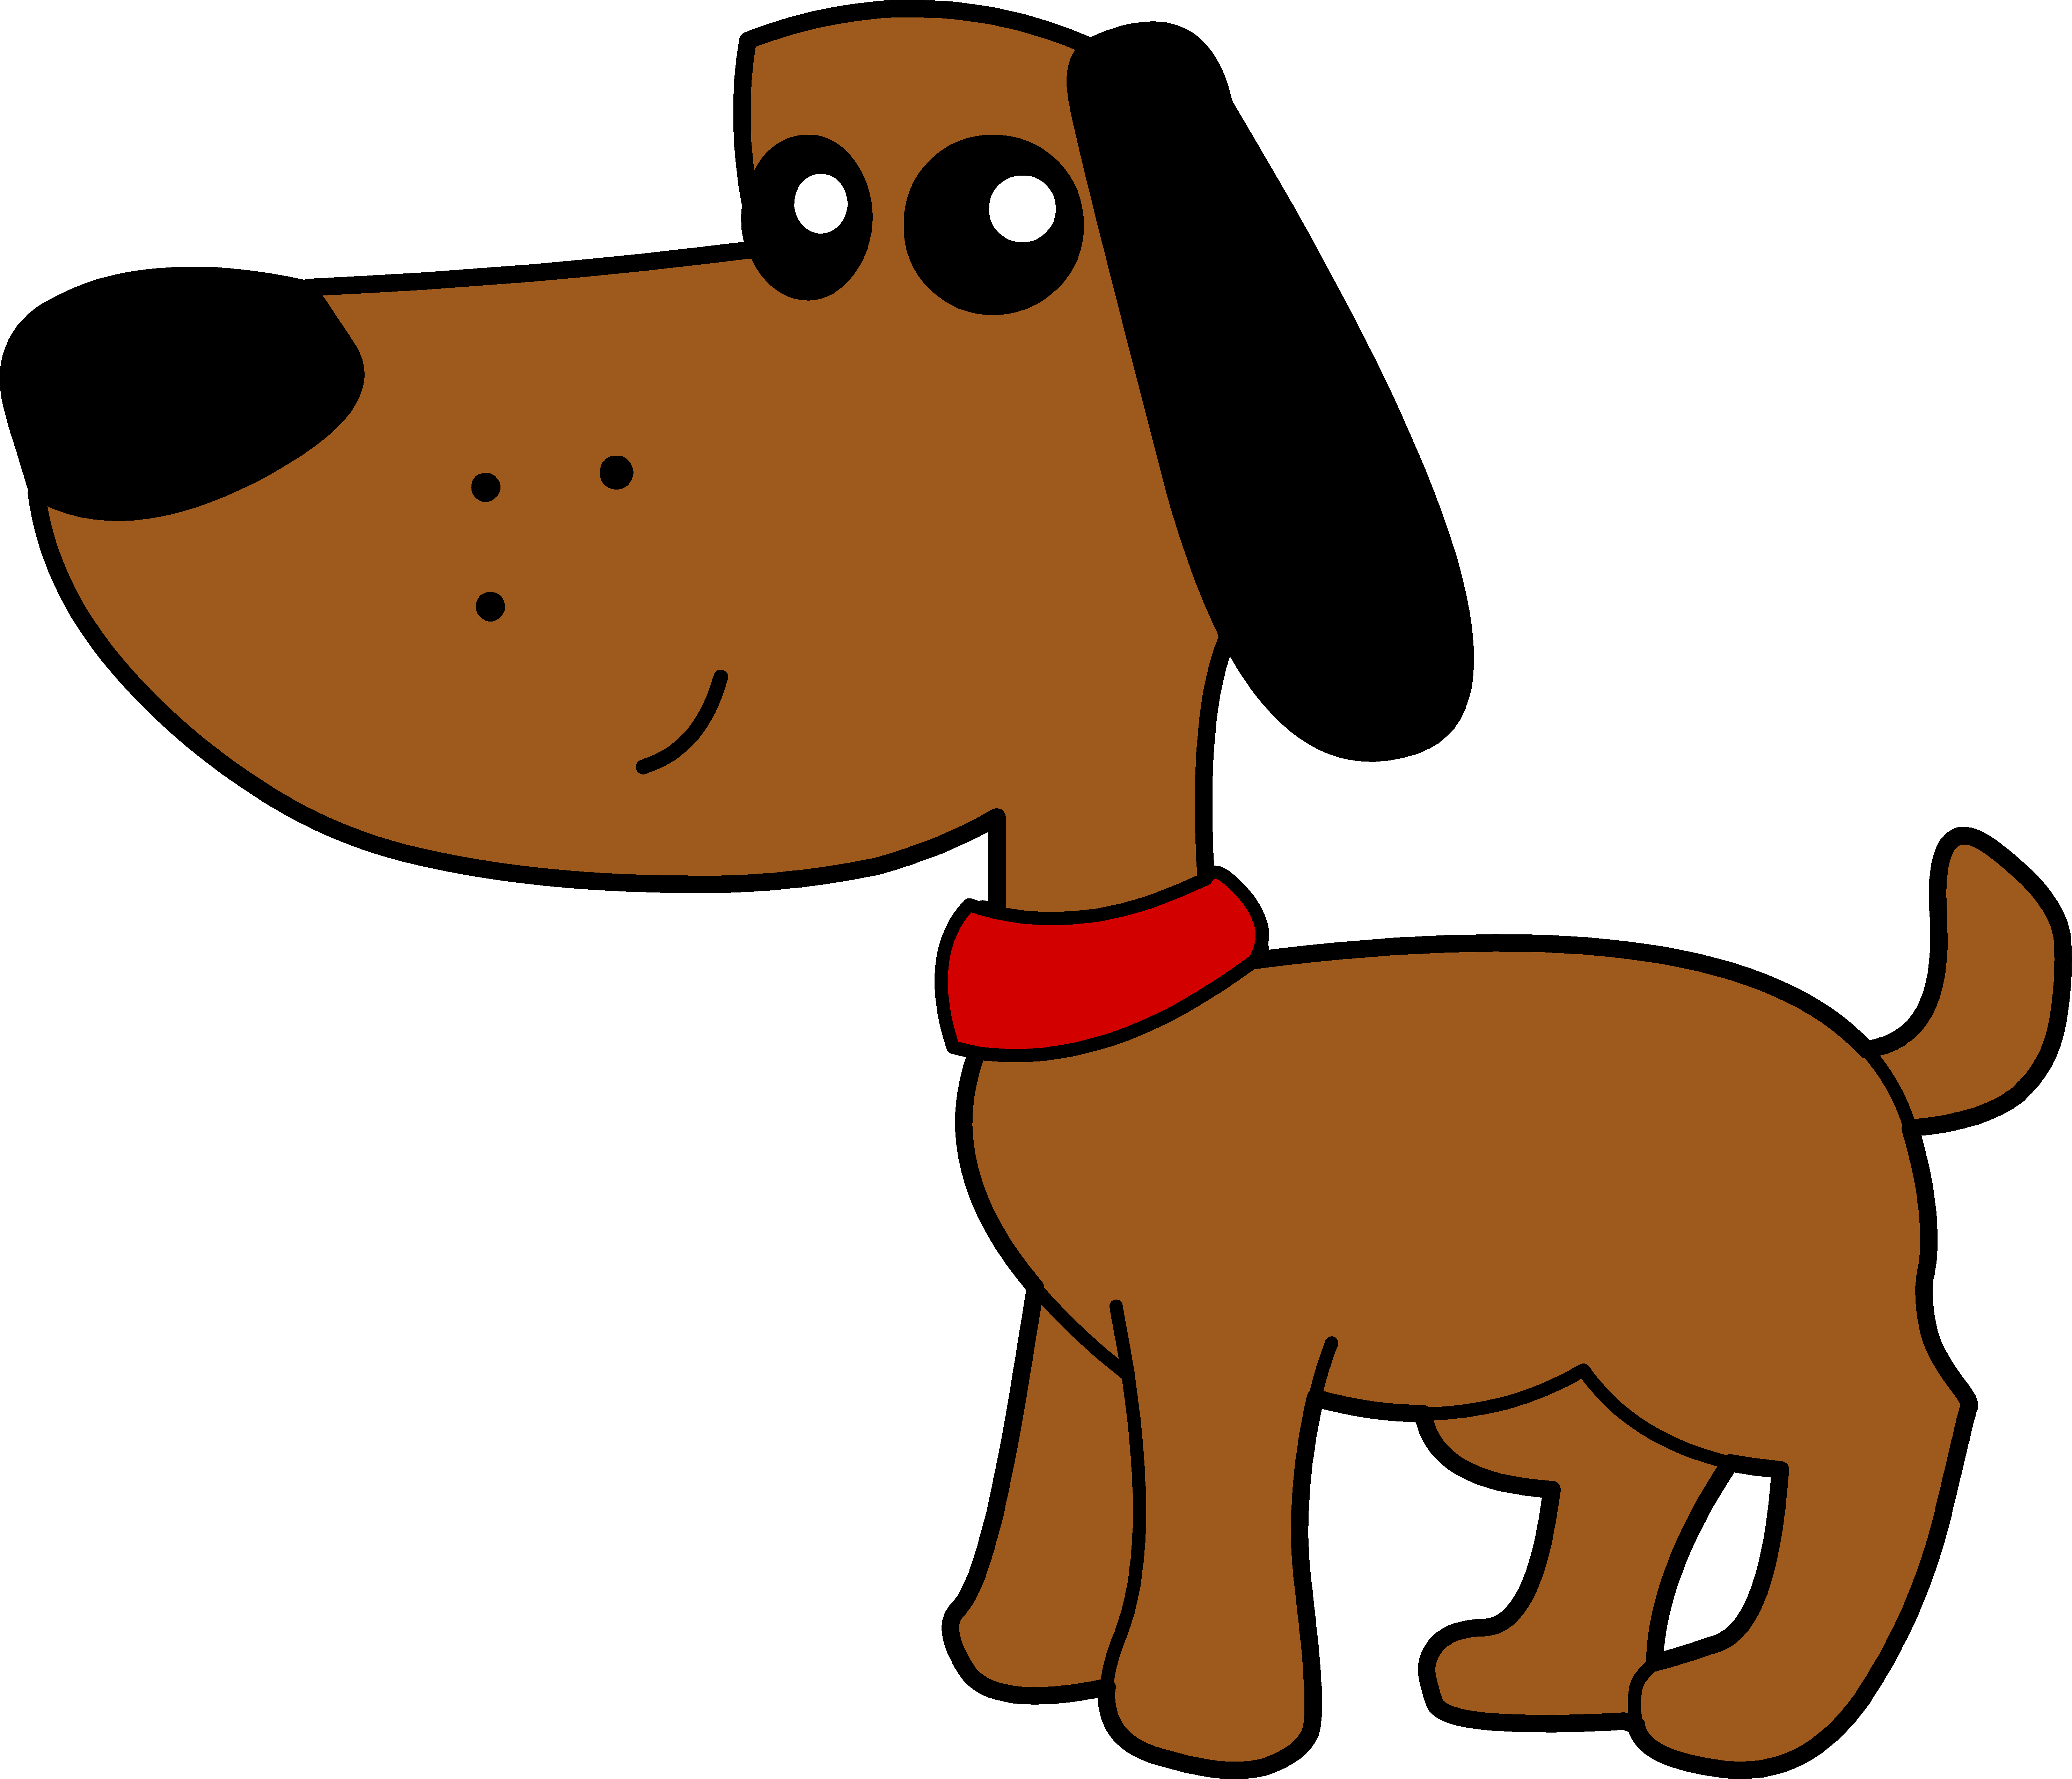 clipart dogs-clipart dogs-2